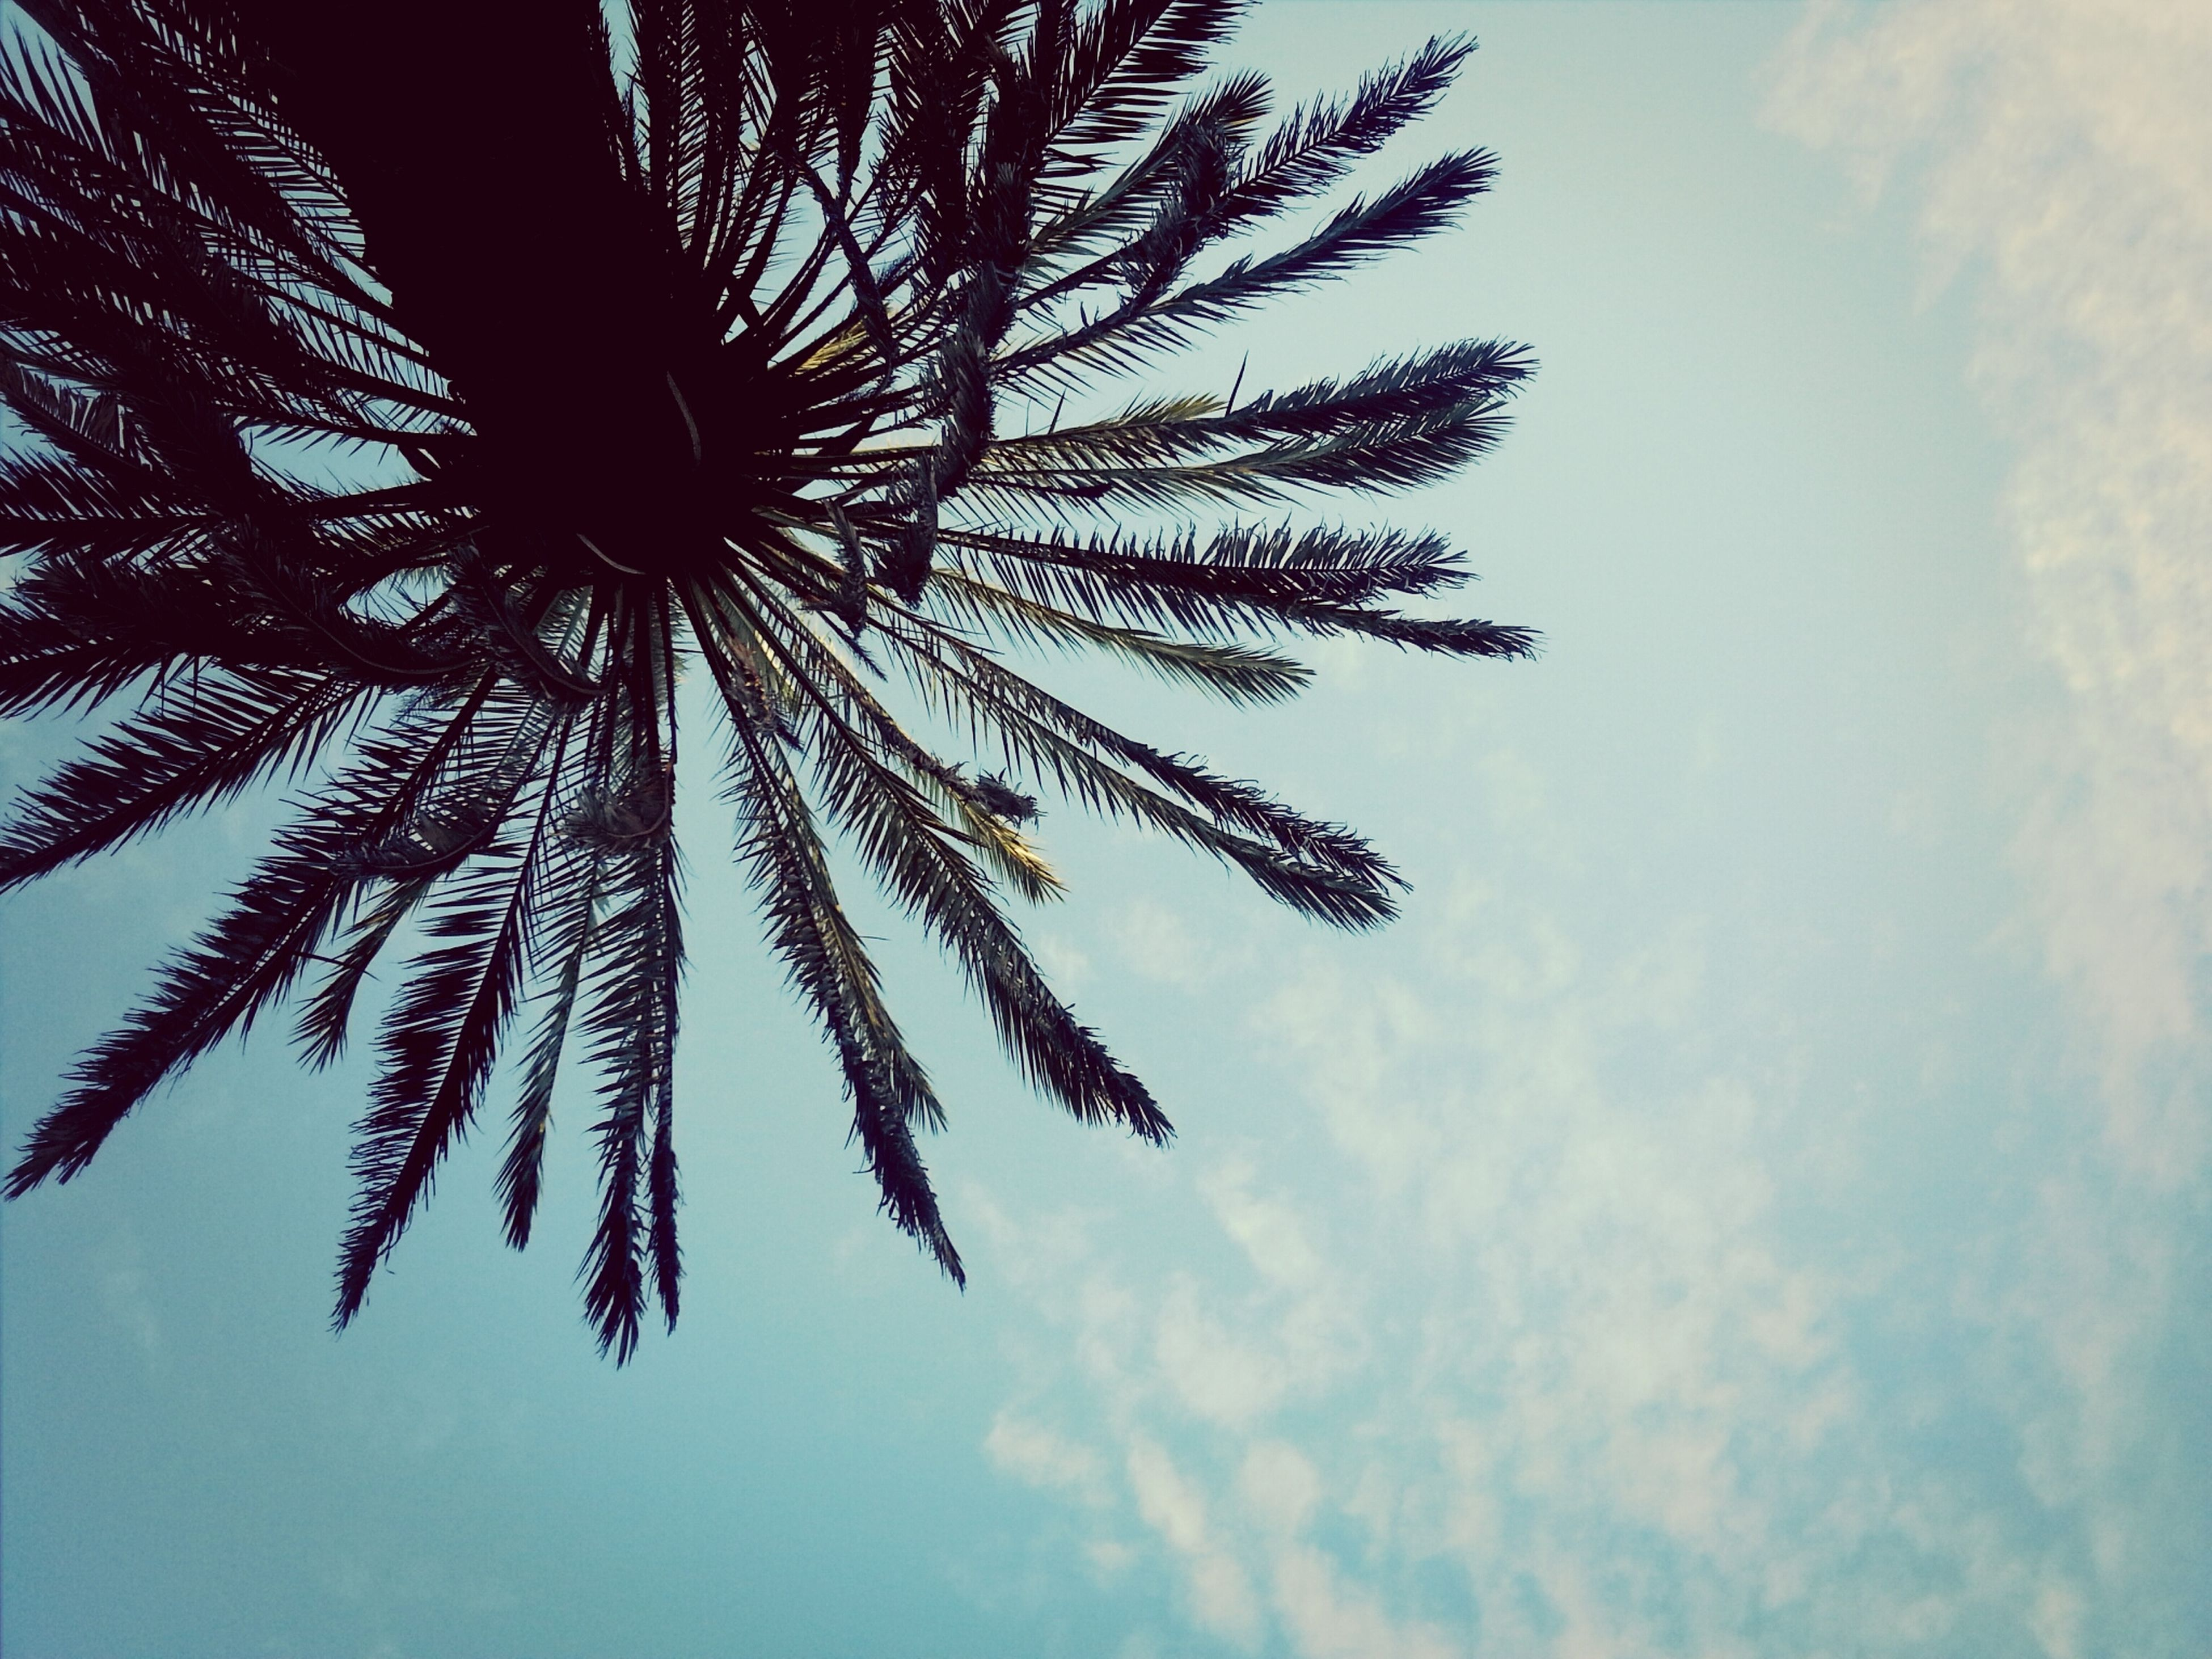 low angle view, sky, palm tree, growth, beauty in nature, tree, nature, cloud - sky, tranquility, cloud, outdoors, no people, day, cloudy, scenics, flower, tall - high, silhouette, leaf, blue